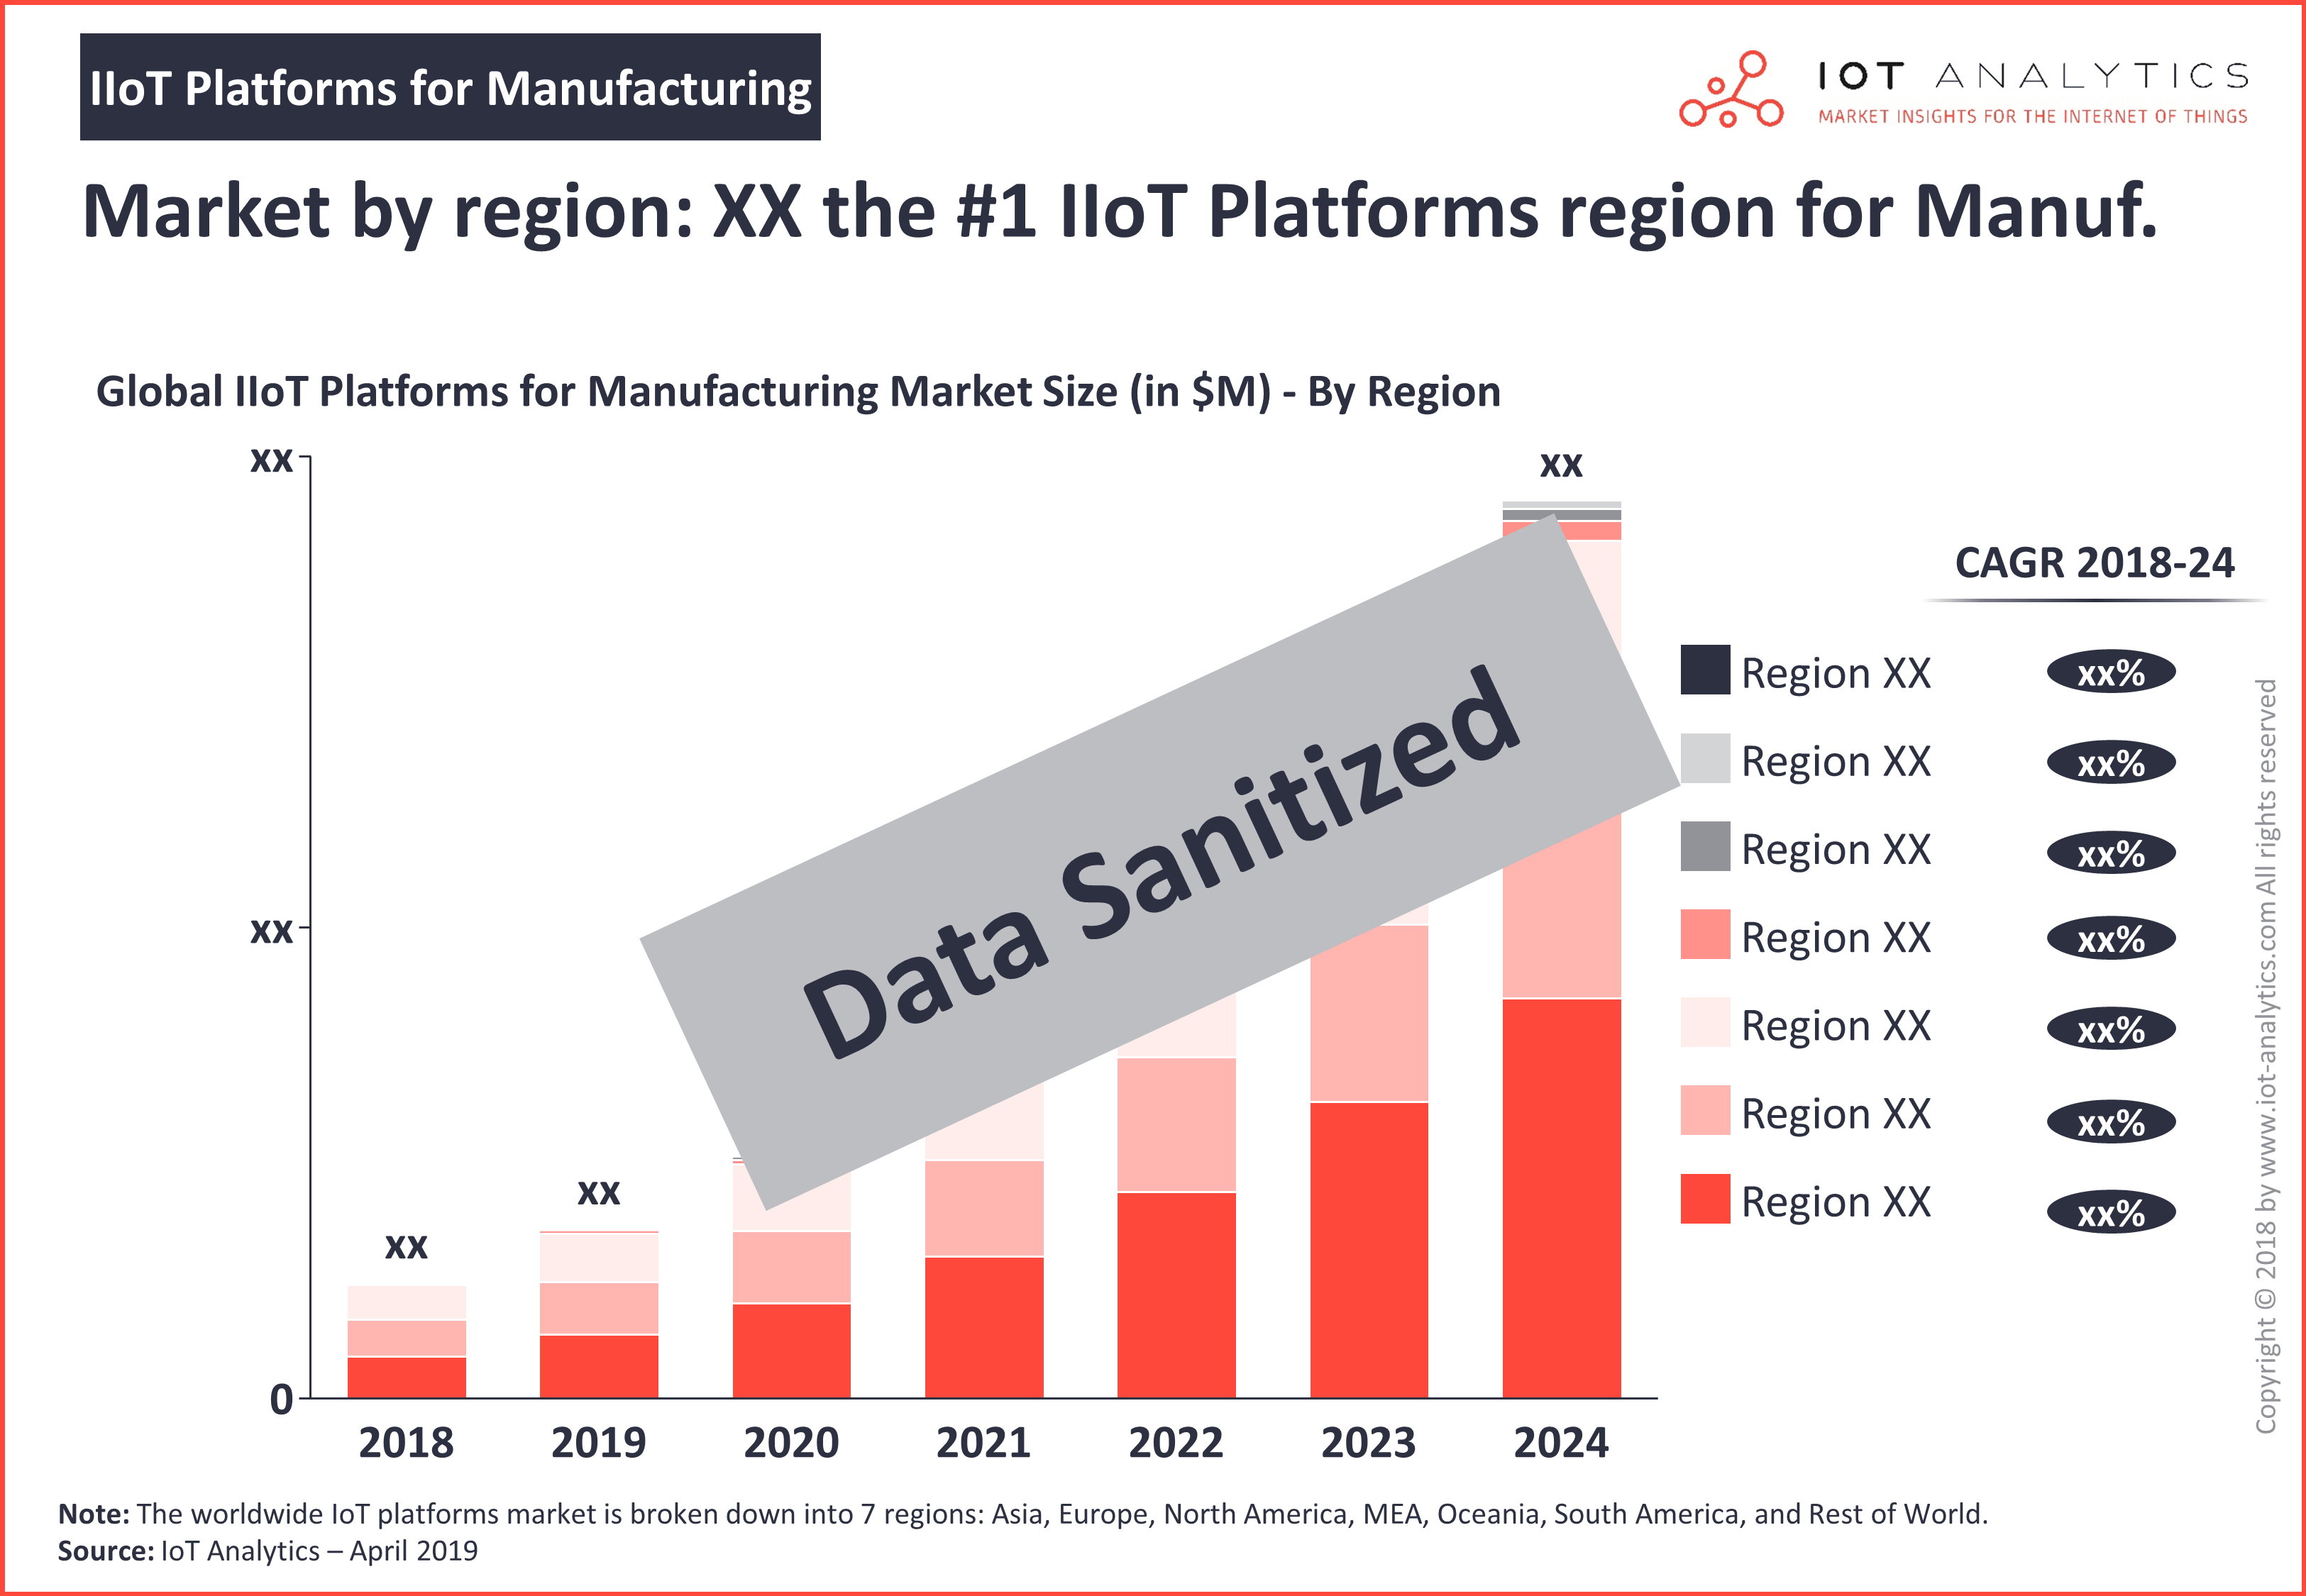 IIoT Platforms for Manufacturing 2019 - 2024 - IIoT platform market by region